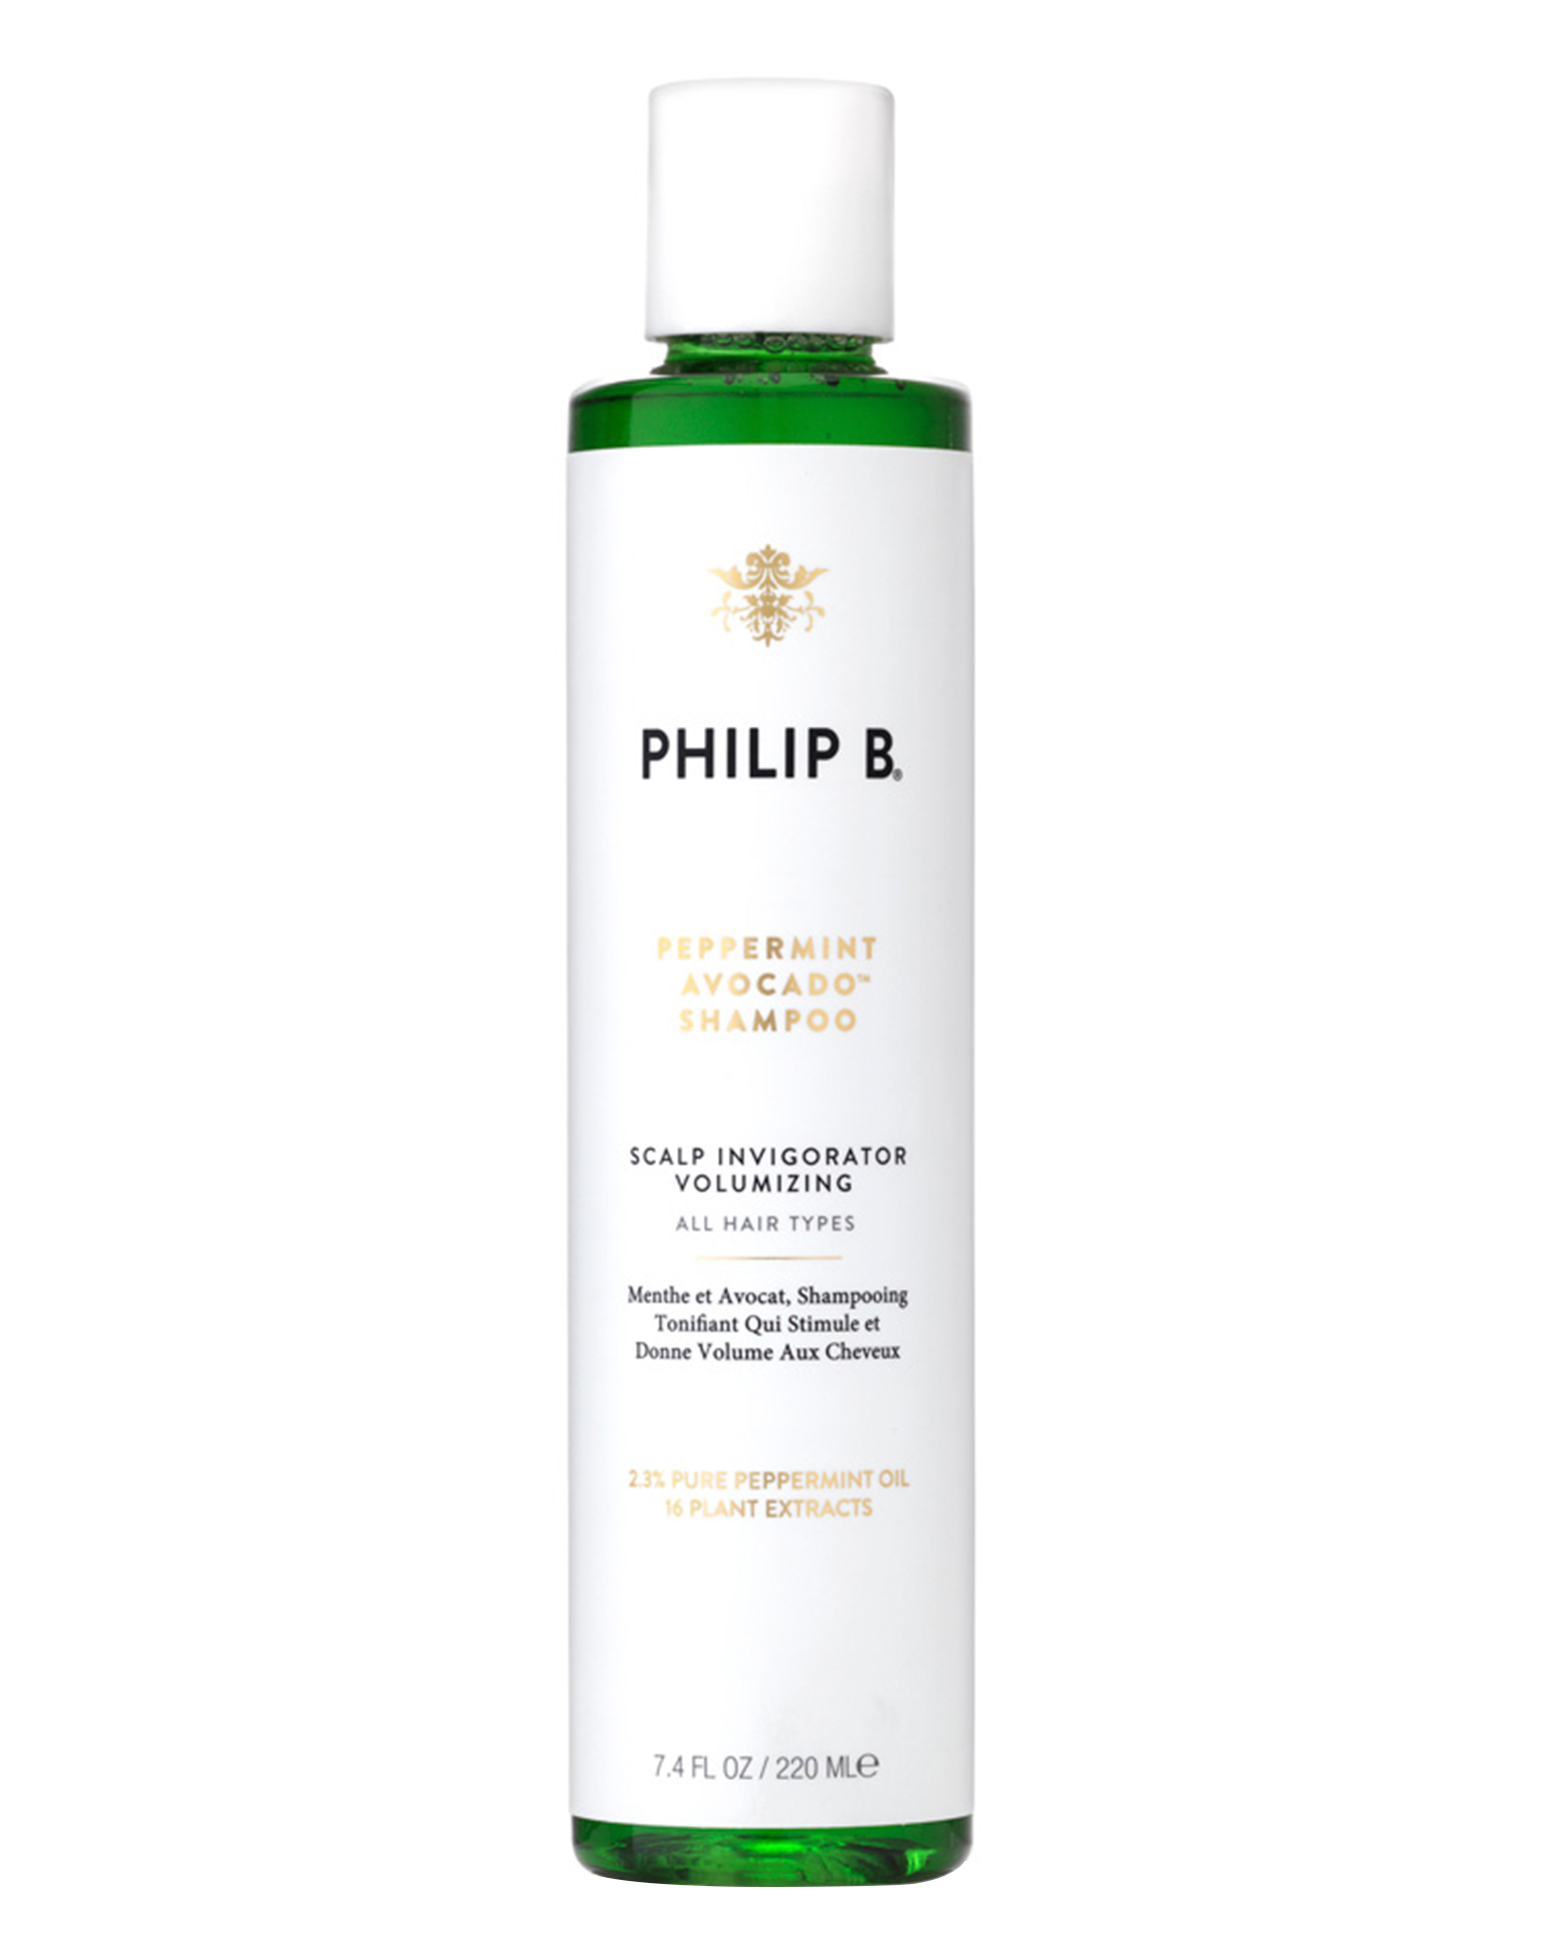 Philip B | Peppermint & Avocado Clarifying Shampoo | Cult Beauty